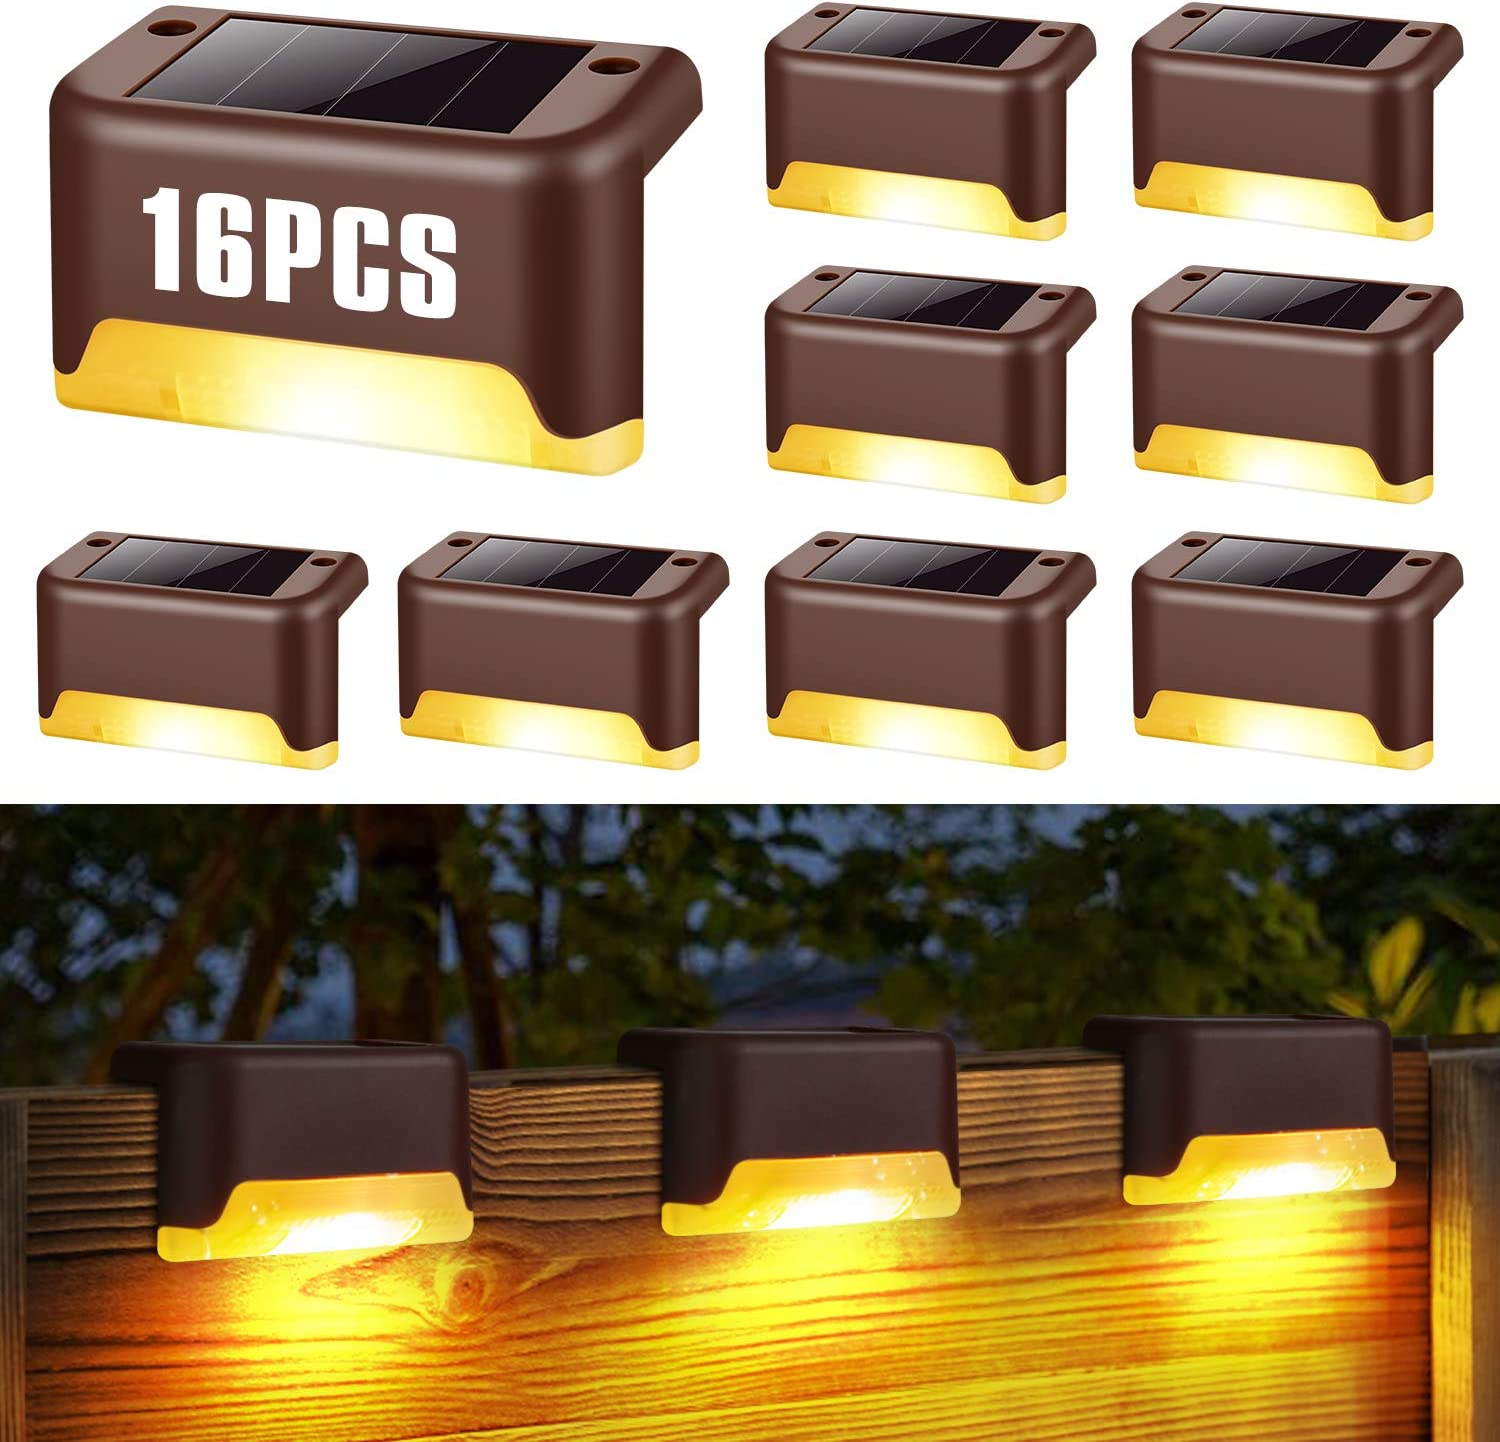 Solar Deck Lights, Solar Fence Light, 16solar Lights, Fence Lights, Outdoor walkways, courtyards, terraces, Stairs, Steps and Fences Outdoor Waterproof Solar Step Lights (Warm White Series)